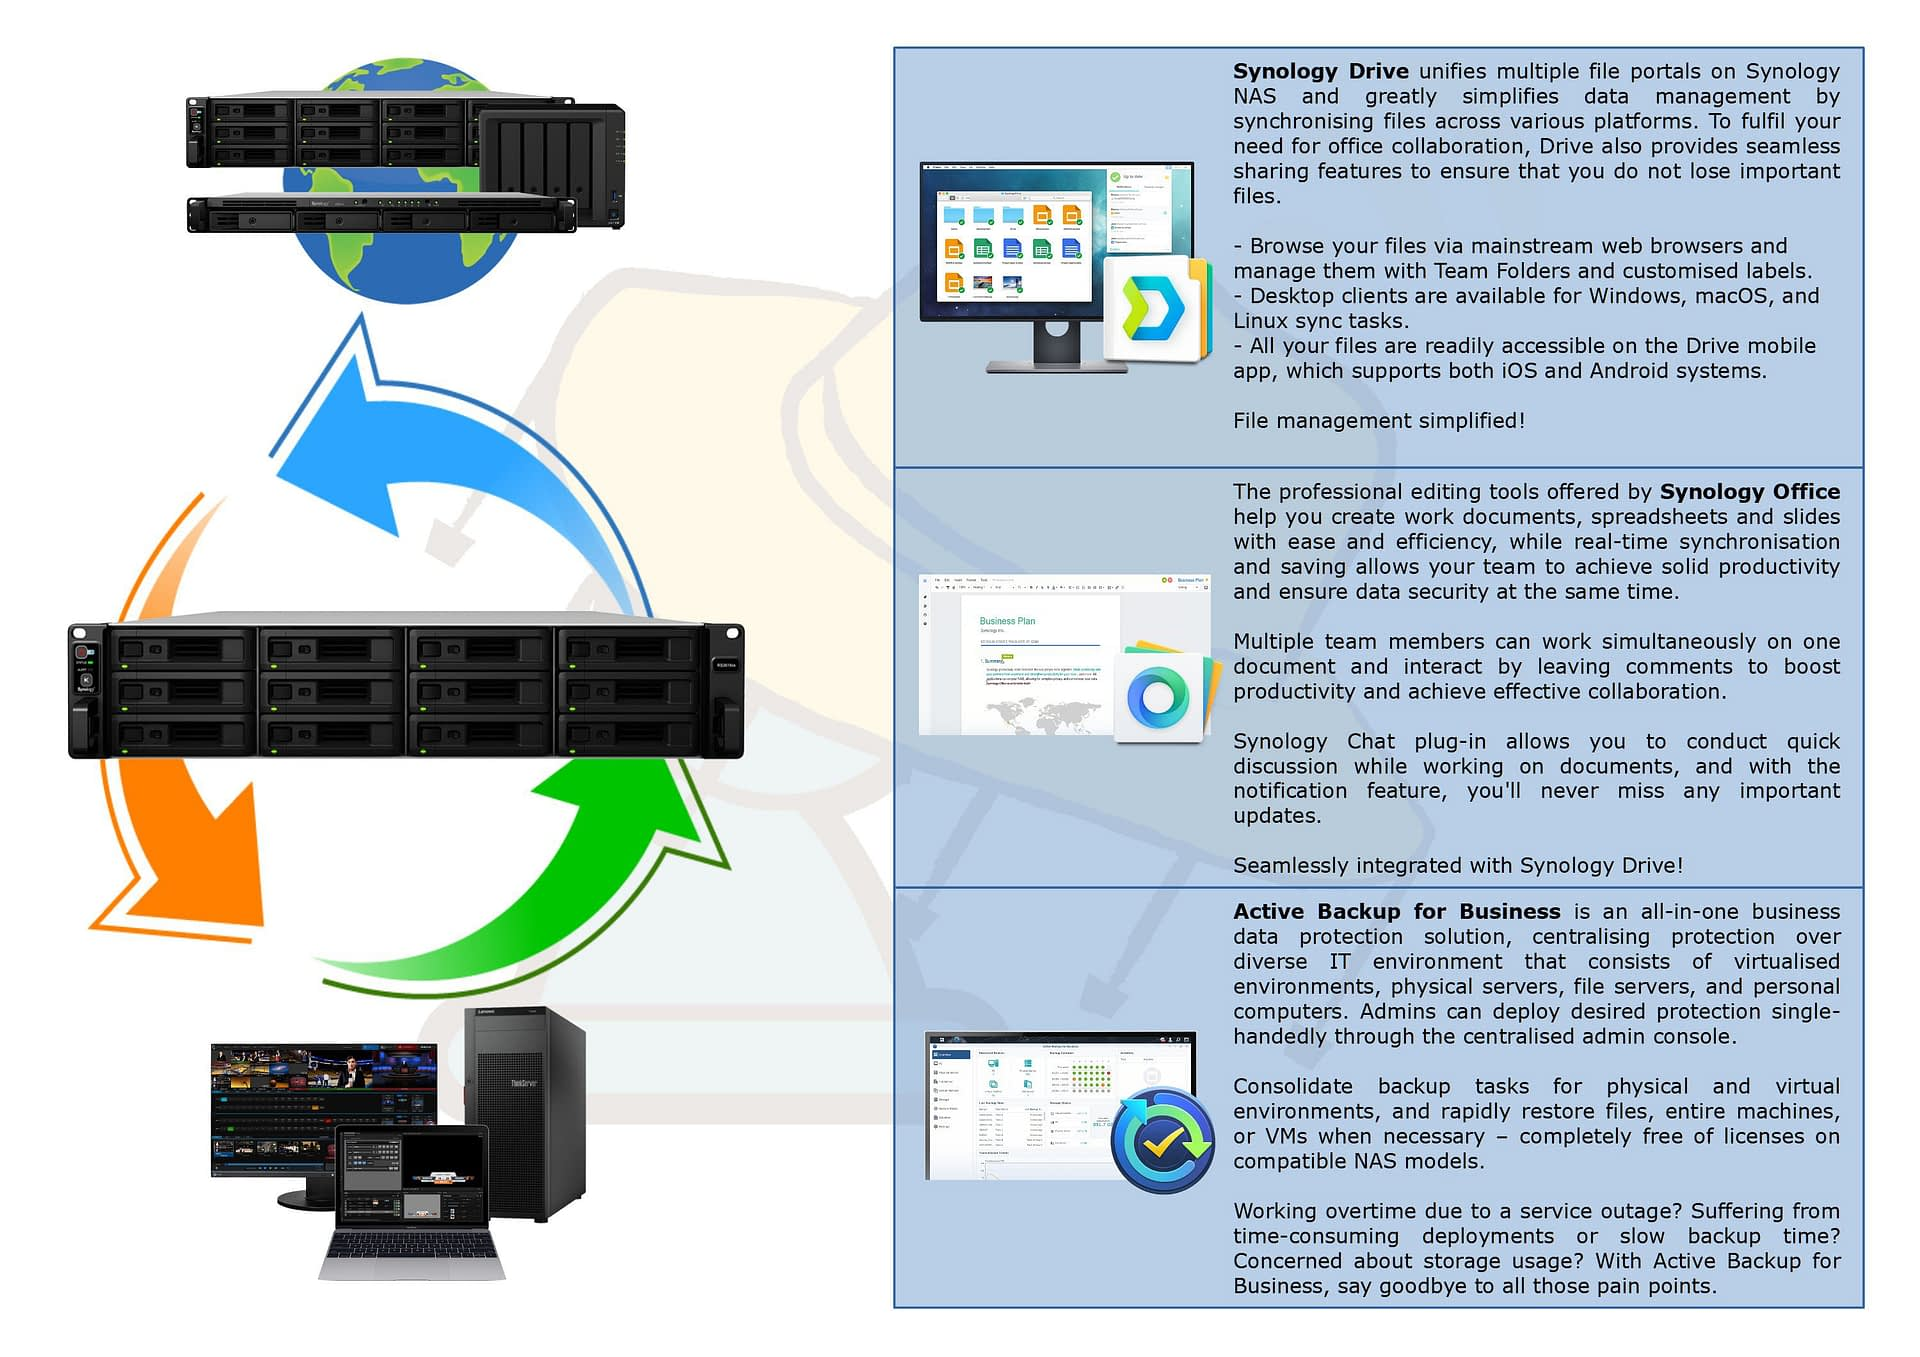 Business Network storage Solutions built on Synology Drive, Synology Office and Active Backup for Business